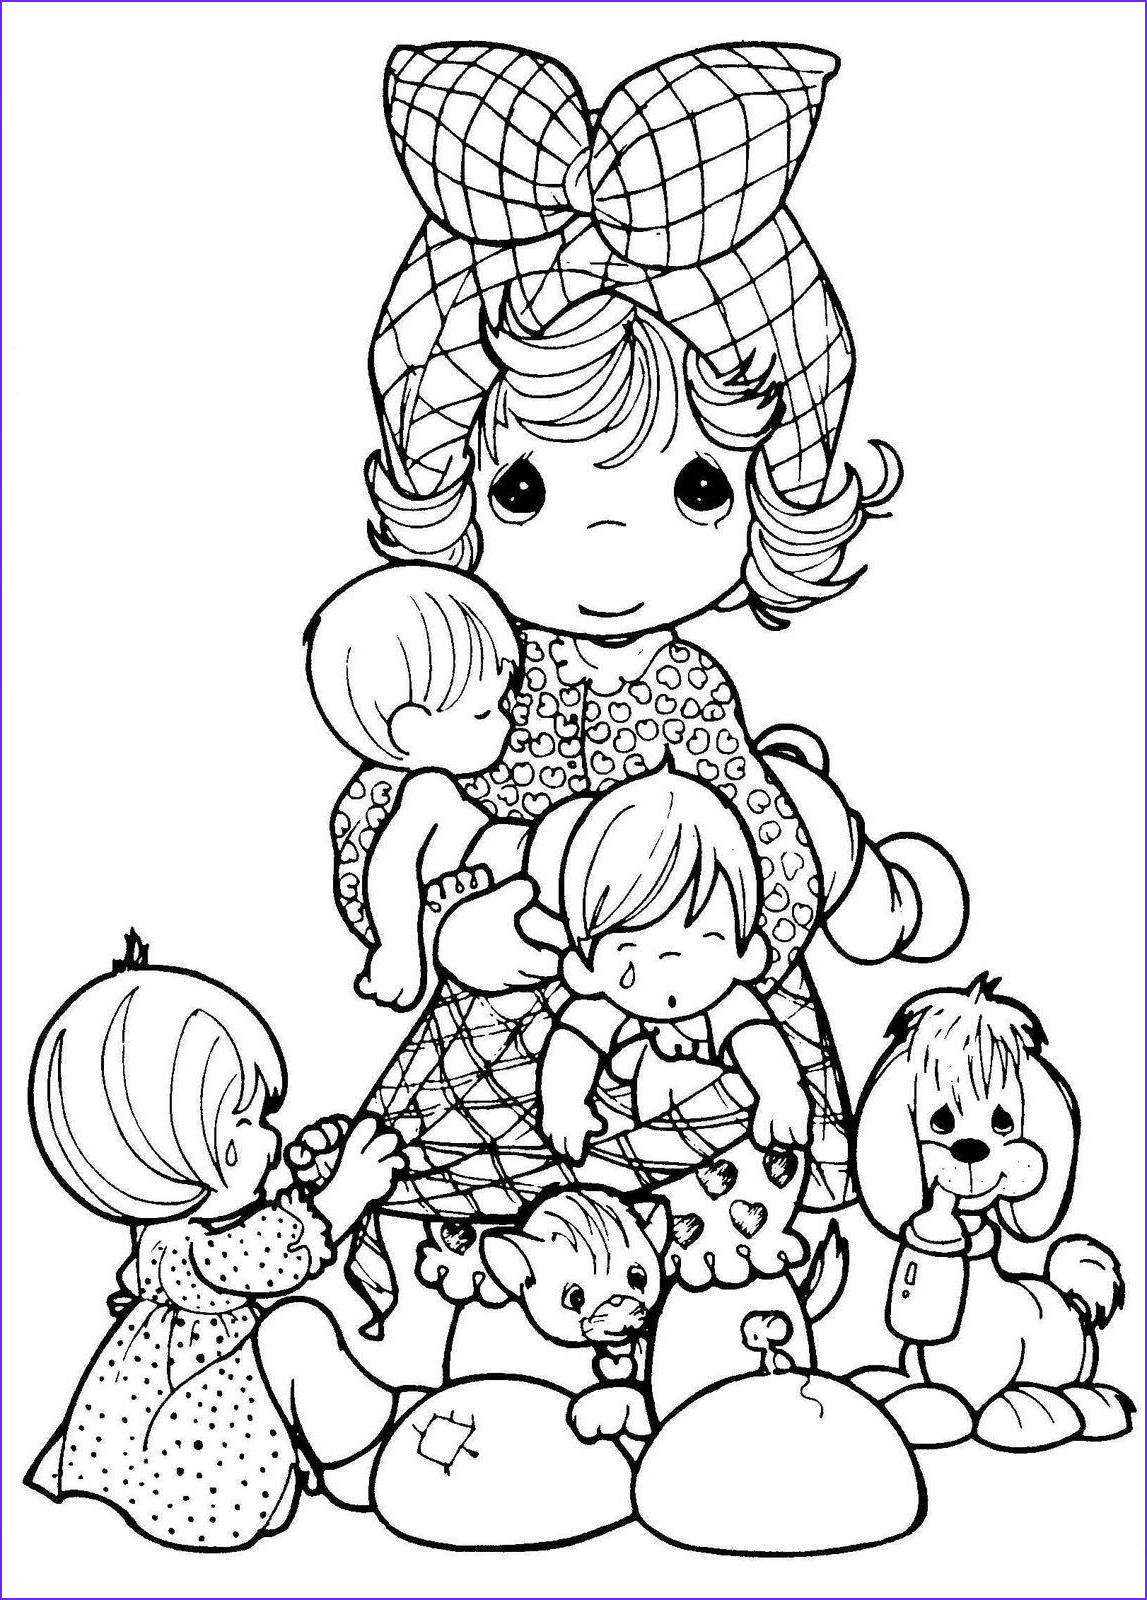 Hd Coloring Page New Photography Elephant Coloring Book